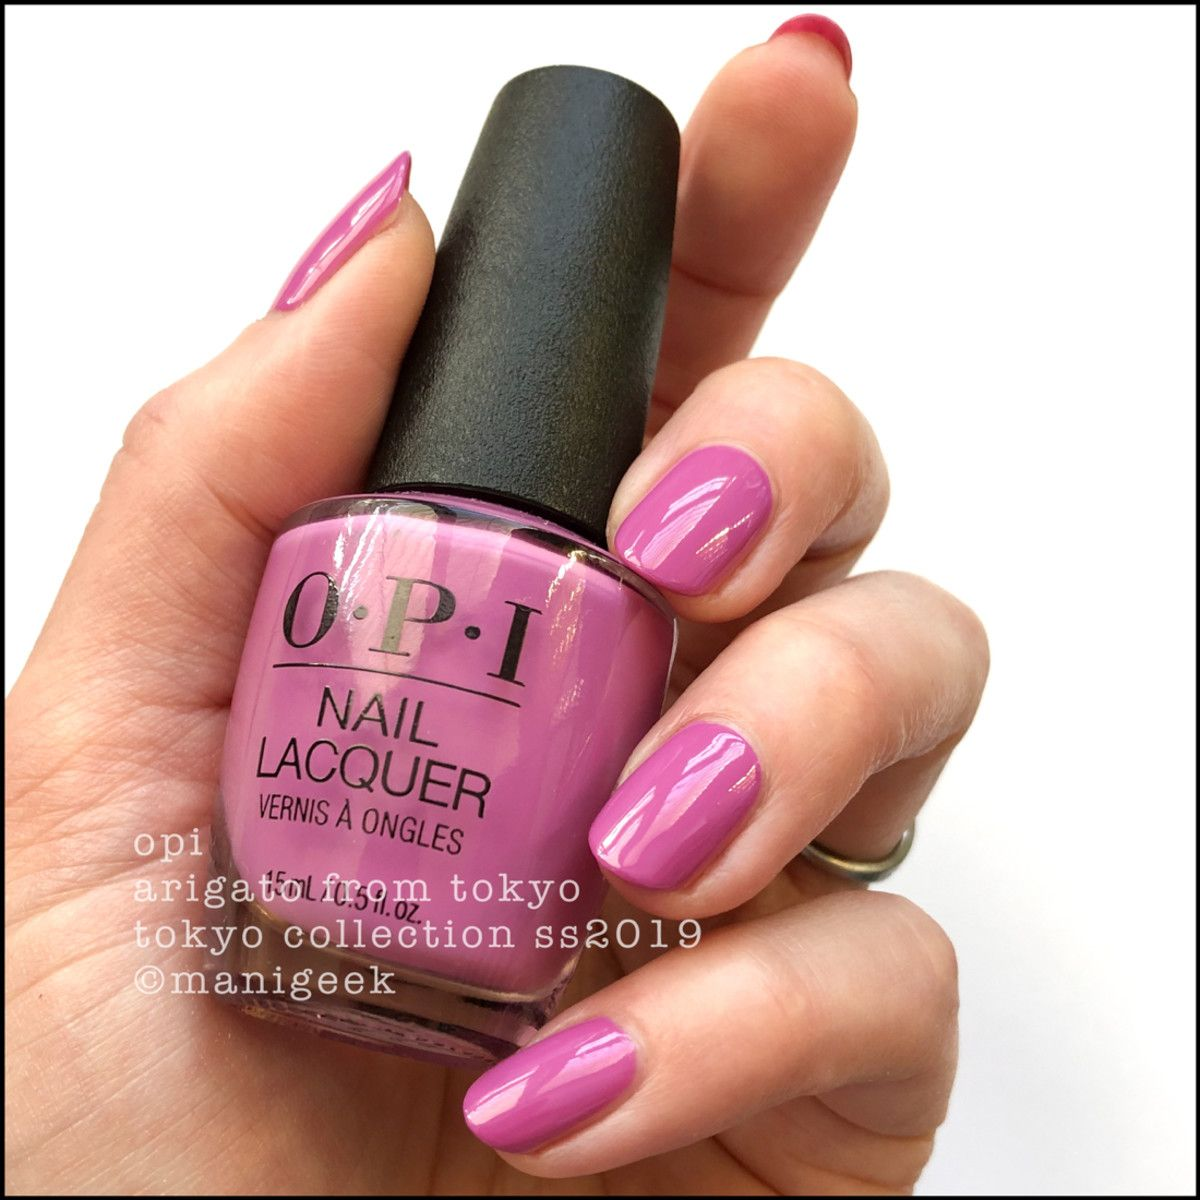 Opi Tokyo Collection Swatches Review Ss2019 Nail Polish Nails